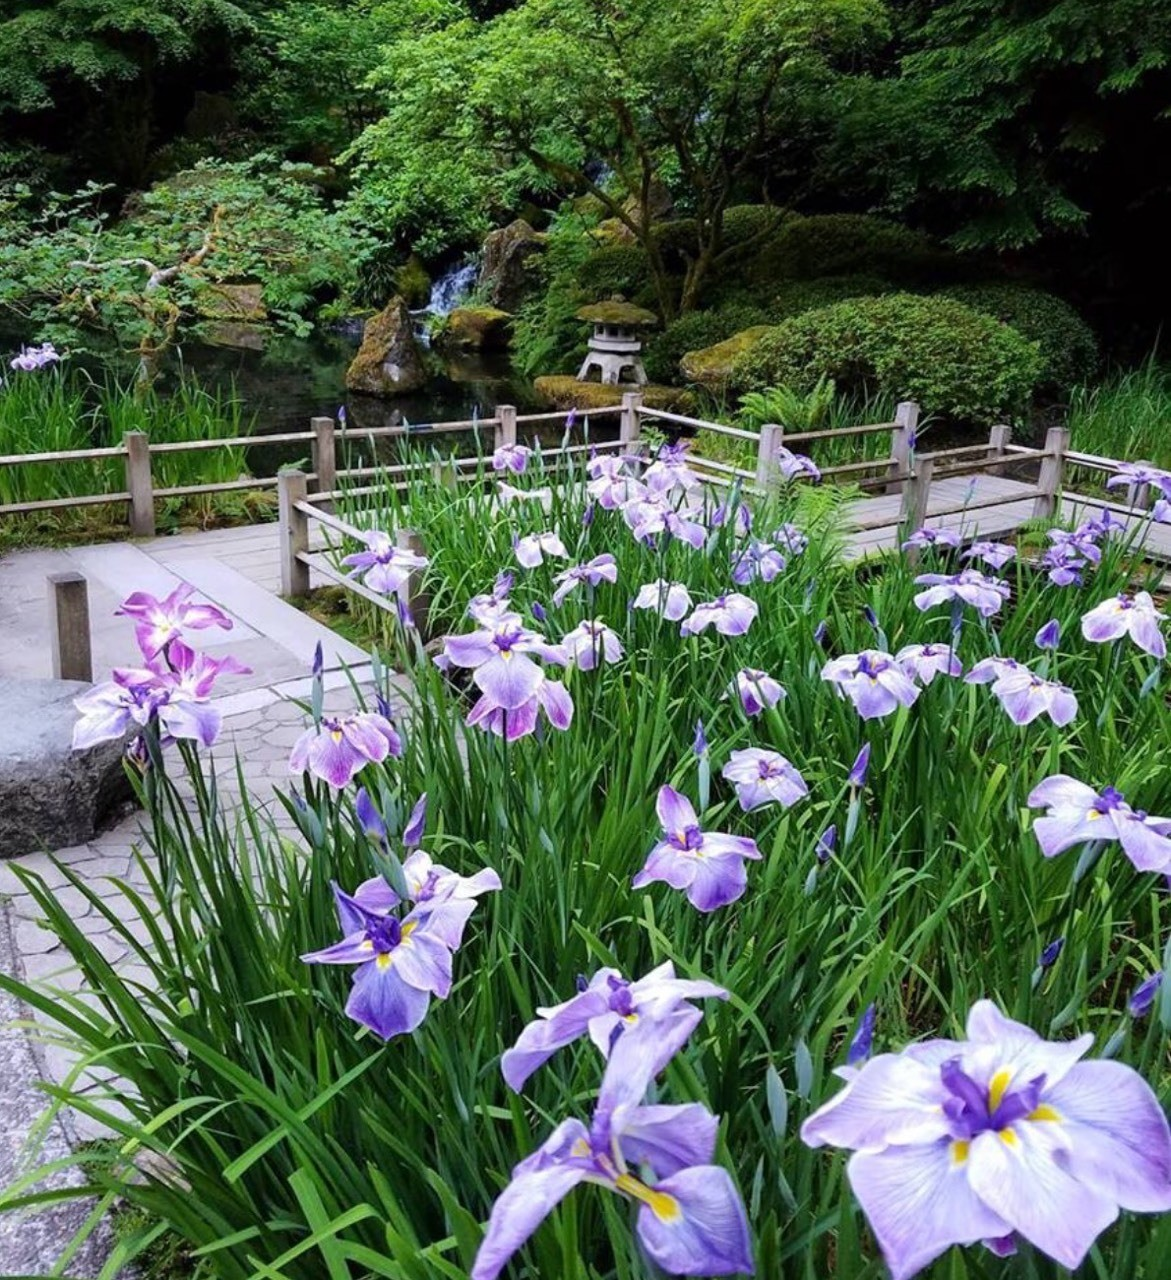 Irises in bloom. Portland Japanese Garden